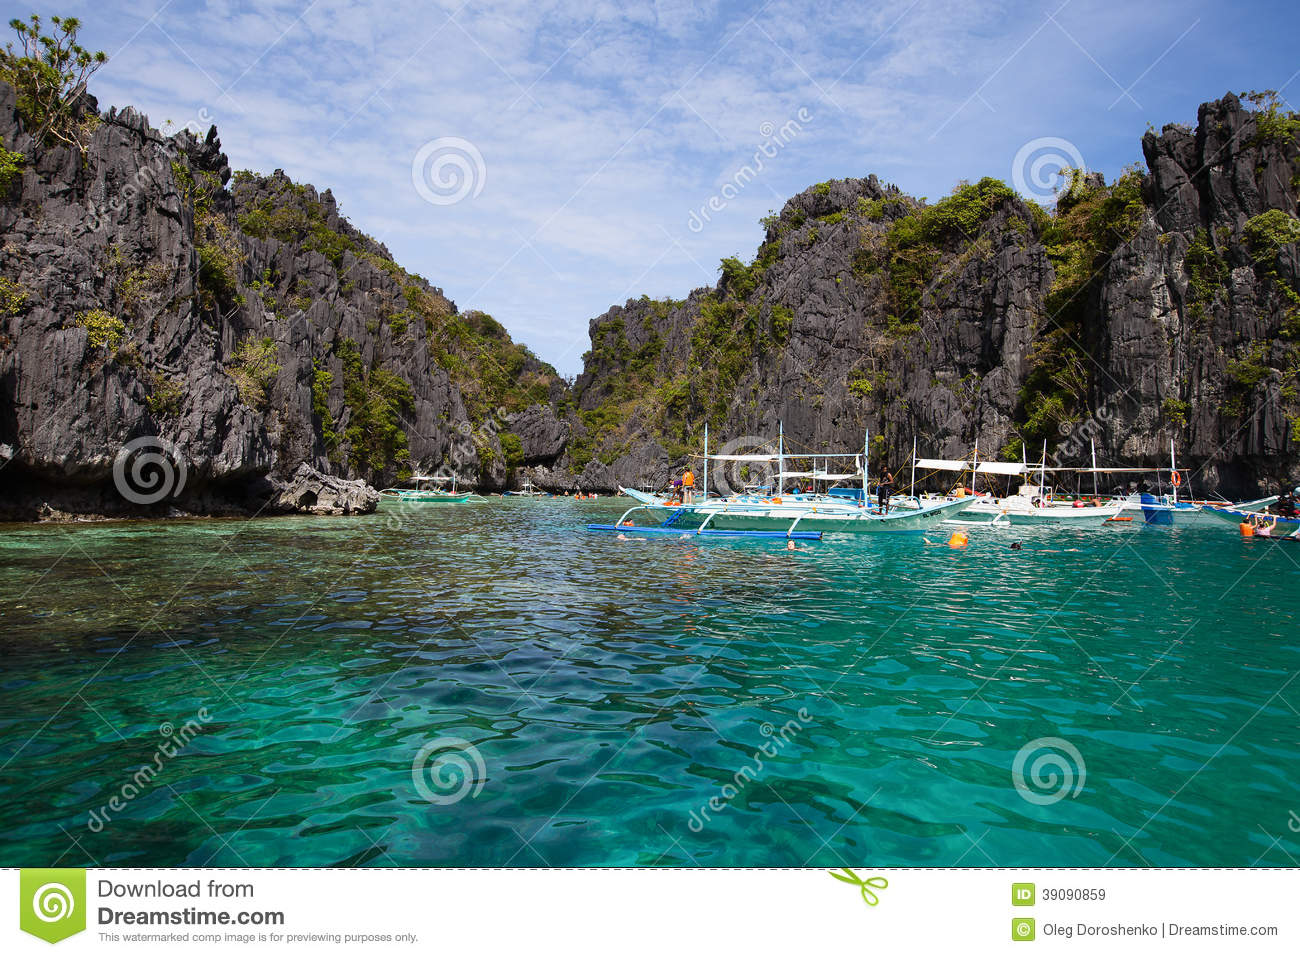 el nido single guys Hotel reviews lolo oyong el nido pension house palawan philippines - useful reviews of this 25 star hotel good stay at el nido it's near where you start the island.